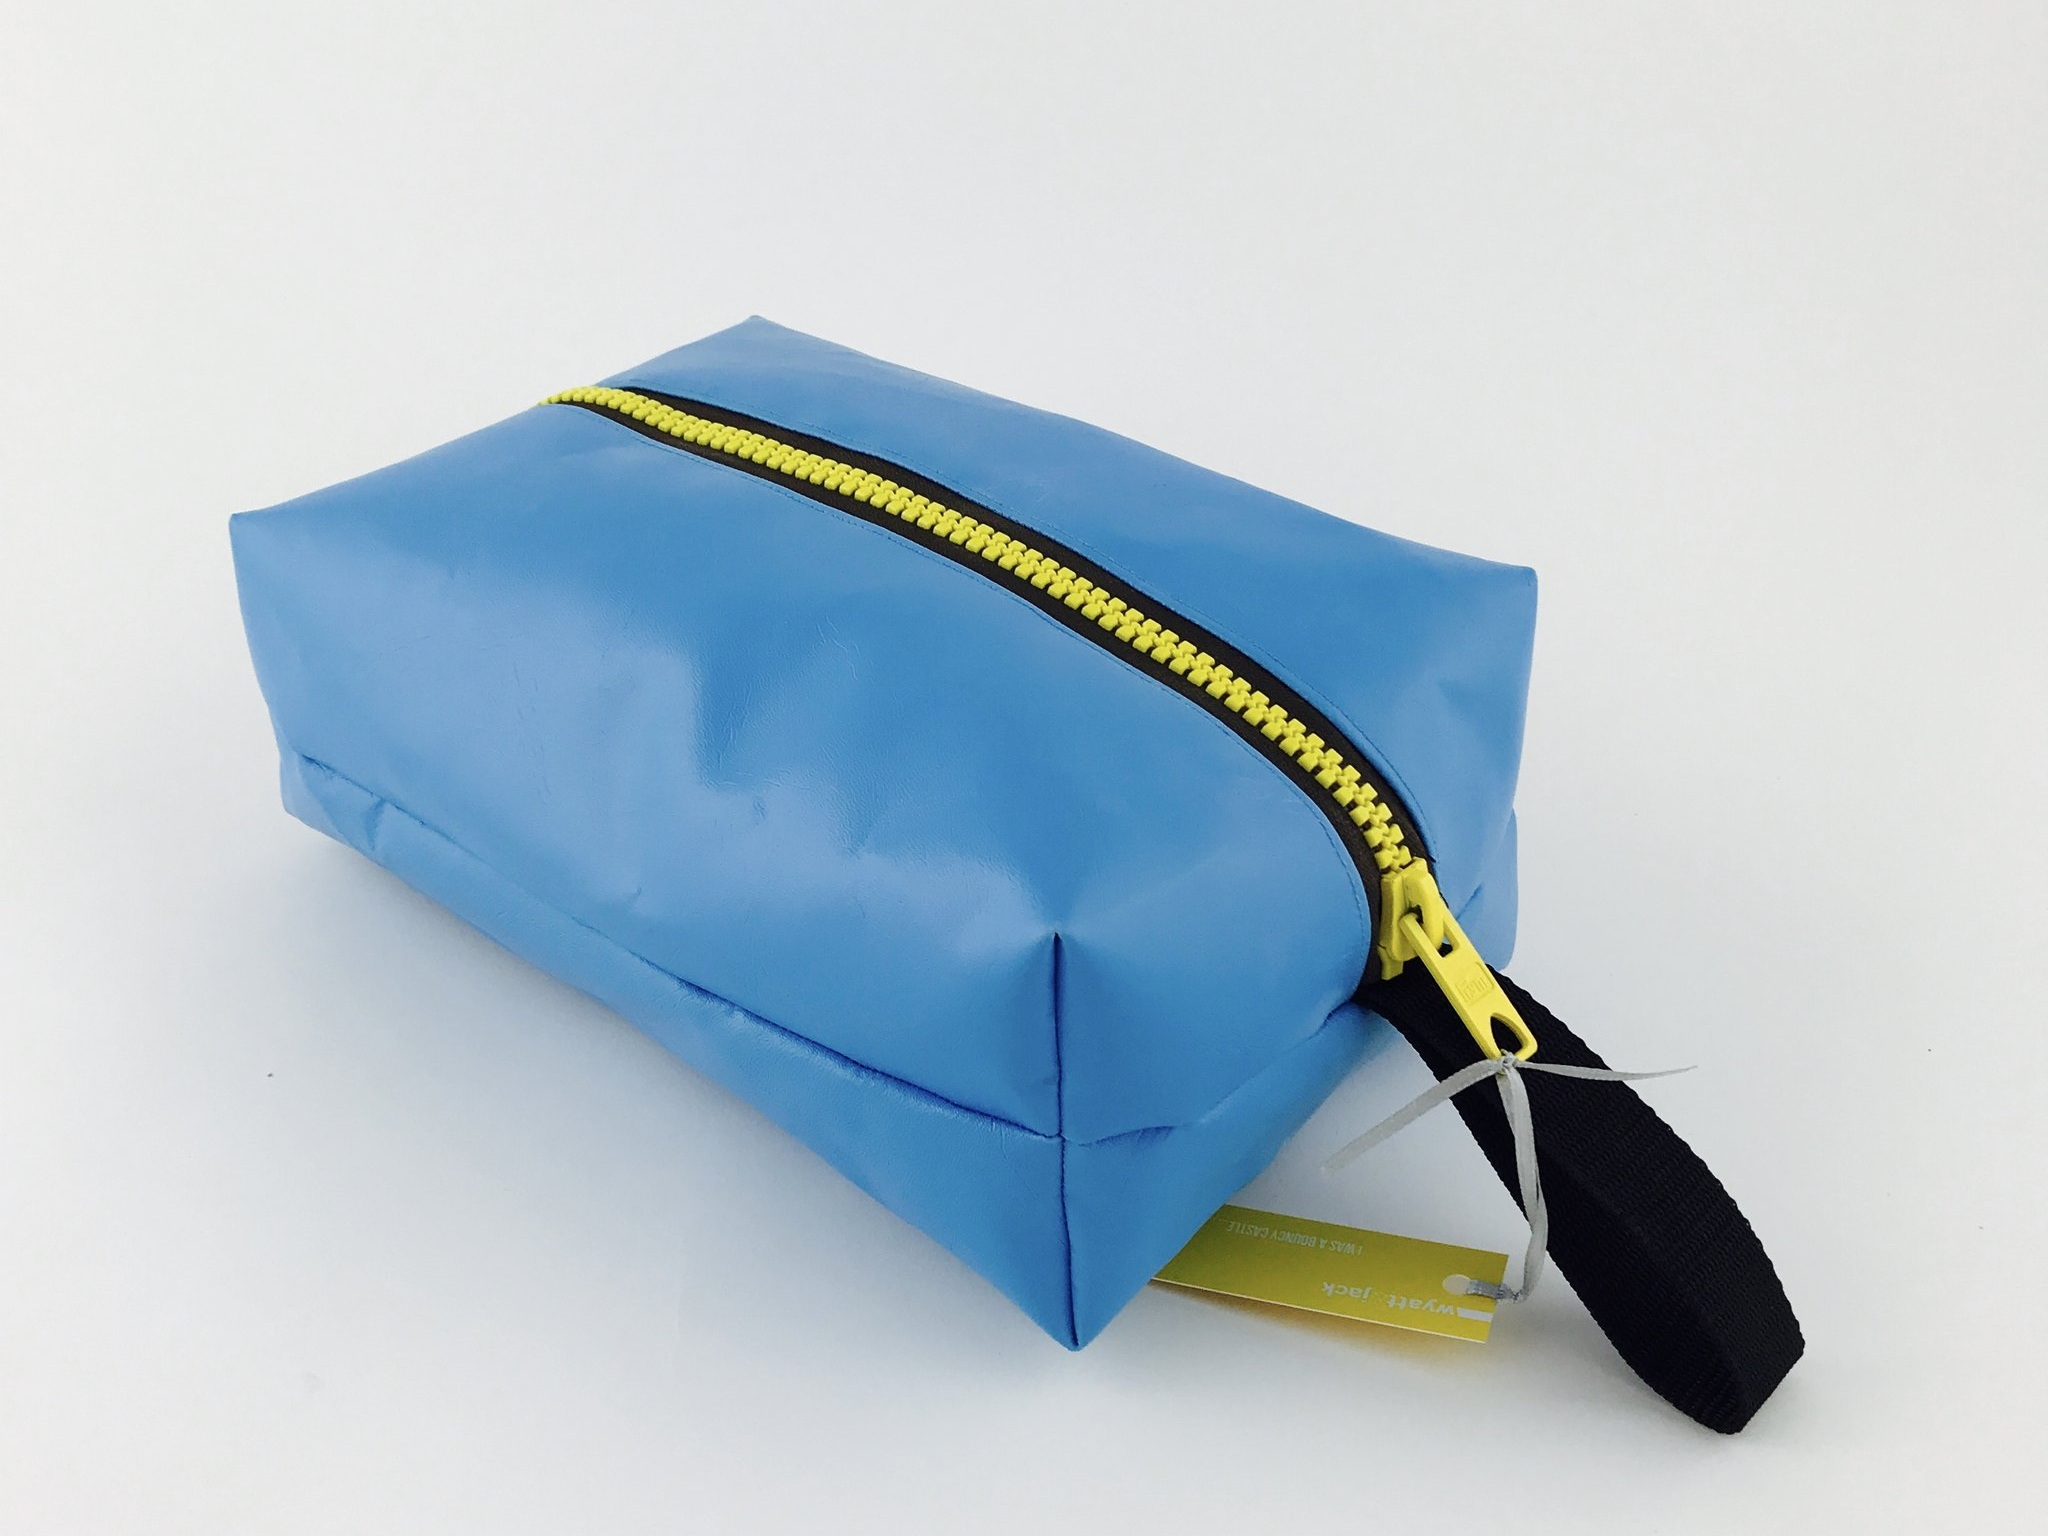 Box Wash Bag - A wash proof neon kite or black cotton lining, a contrasting full zip closure and webbing strap, for hanging up behind doors of swanky hotel roomsLarge enough for a full size bottle of shampoo and all your essential bits n bobsDimensions: L 350mm x W 230mm x D 160mm